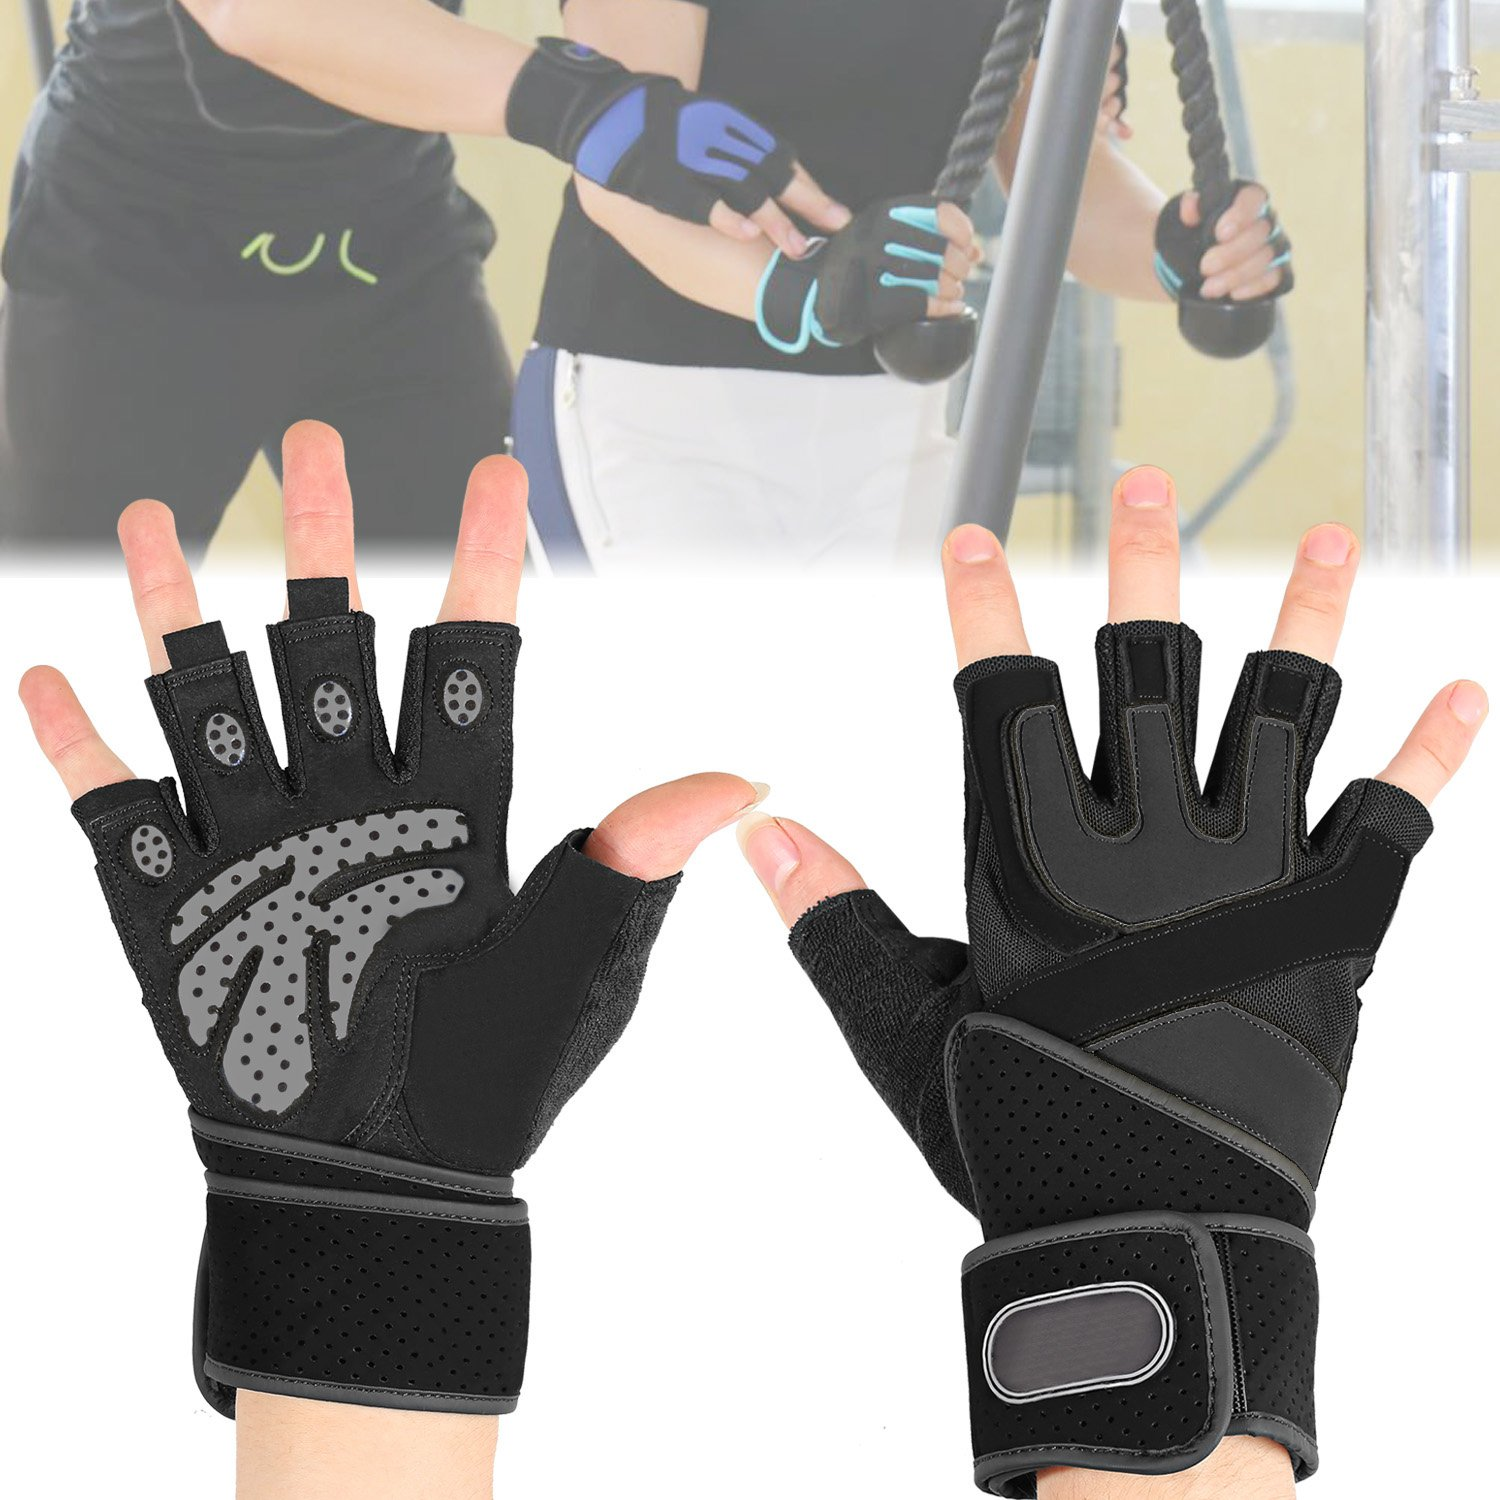 ANCHEER Weight Lifting Gloves with 18.5 Wrist Wraps Support for Gym Workout Black, M Anti-Slip and Extra Durability Pair